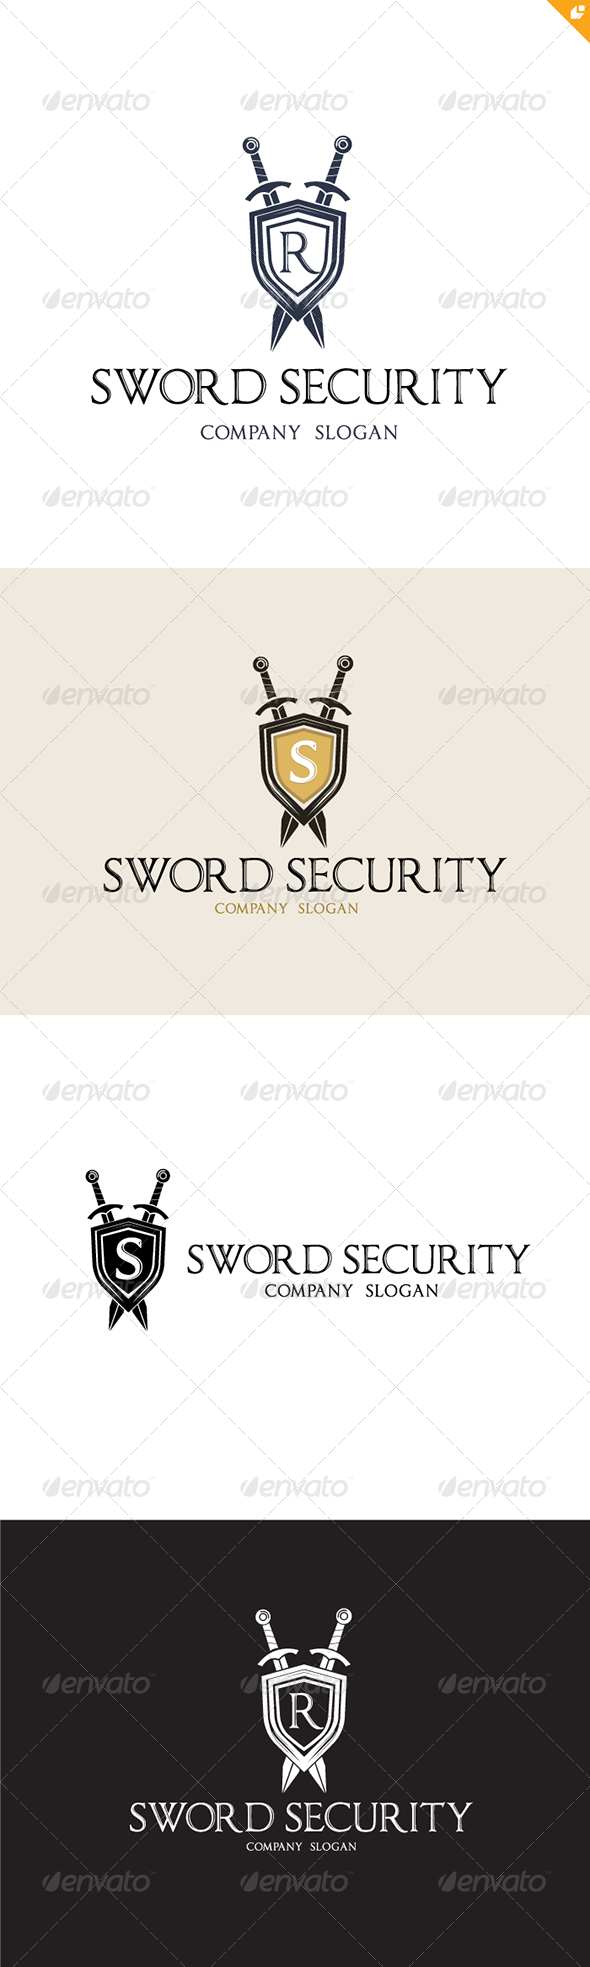 GraphicRiver Sword Security Logo 4566625